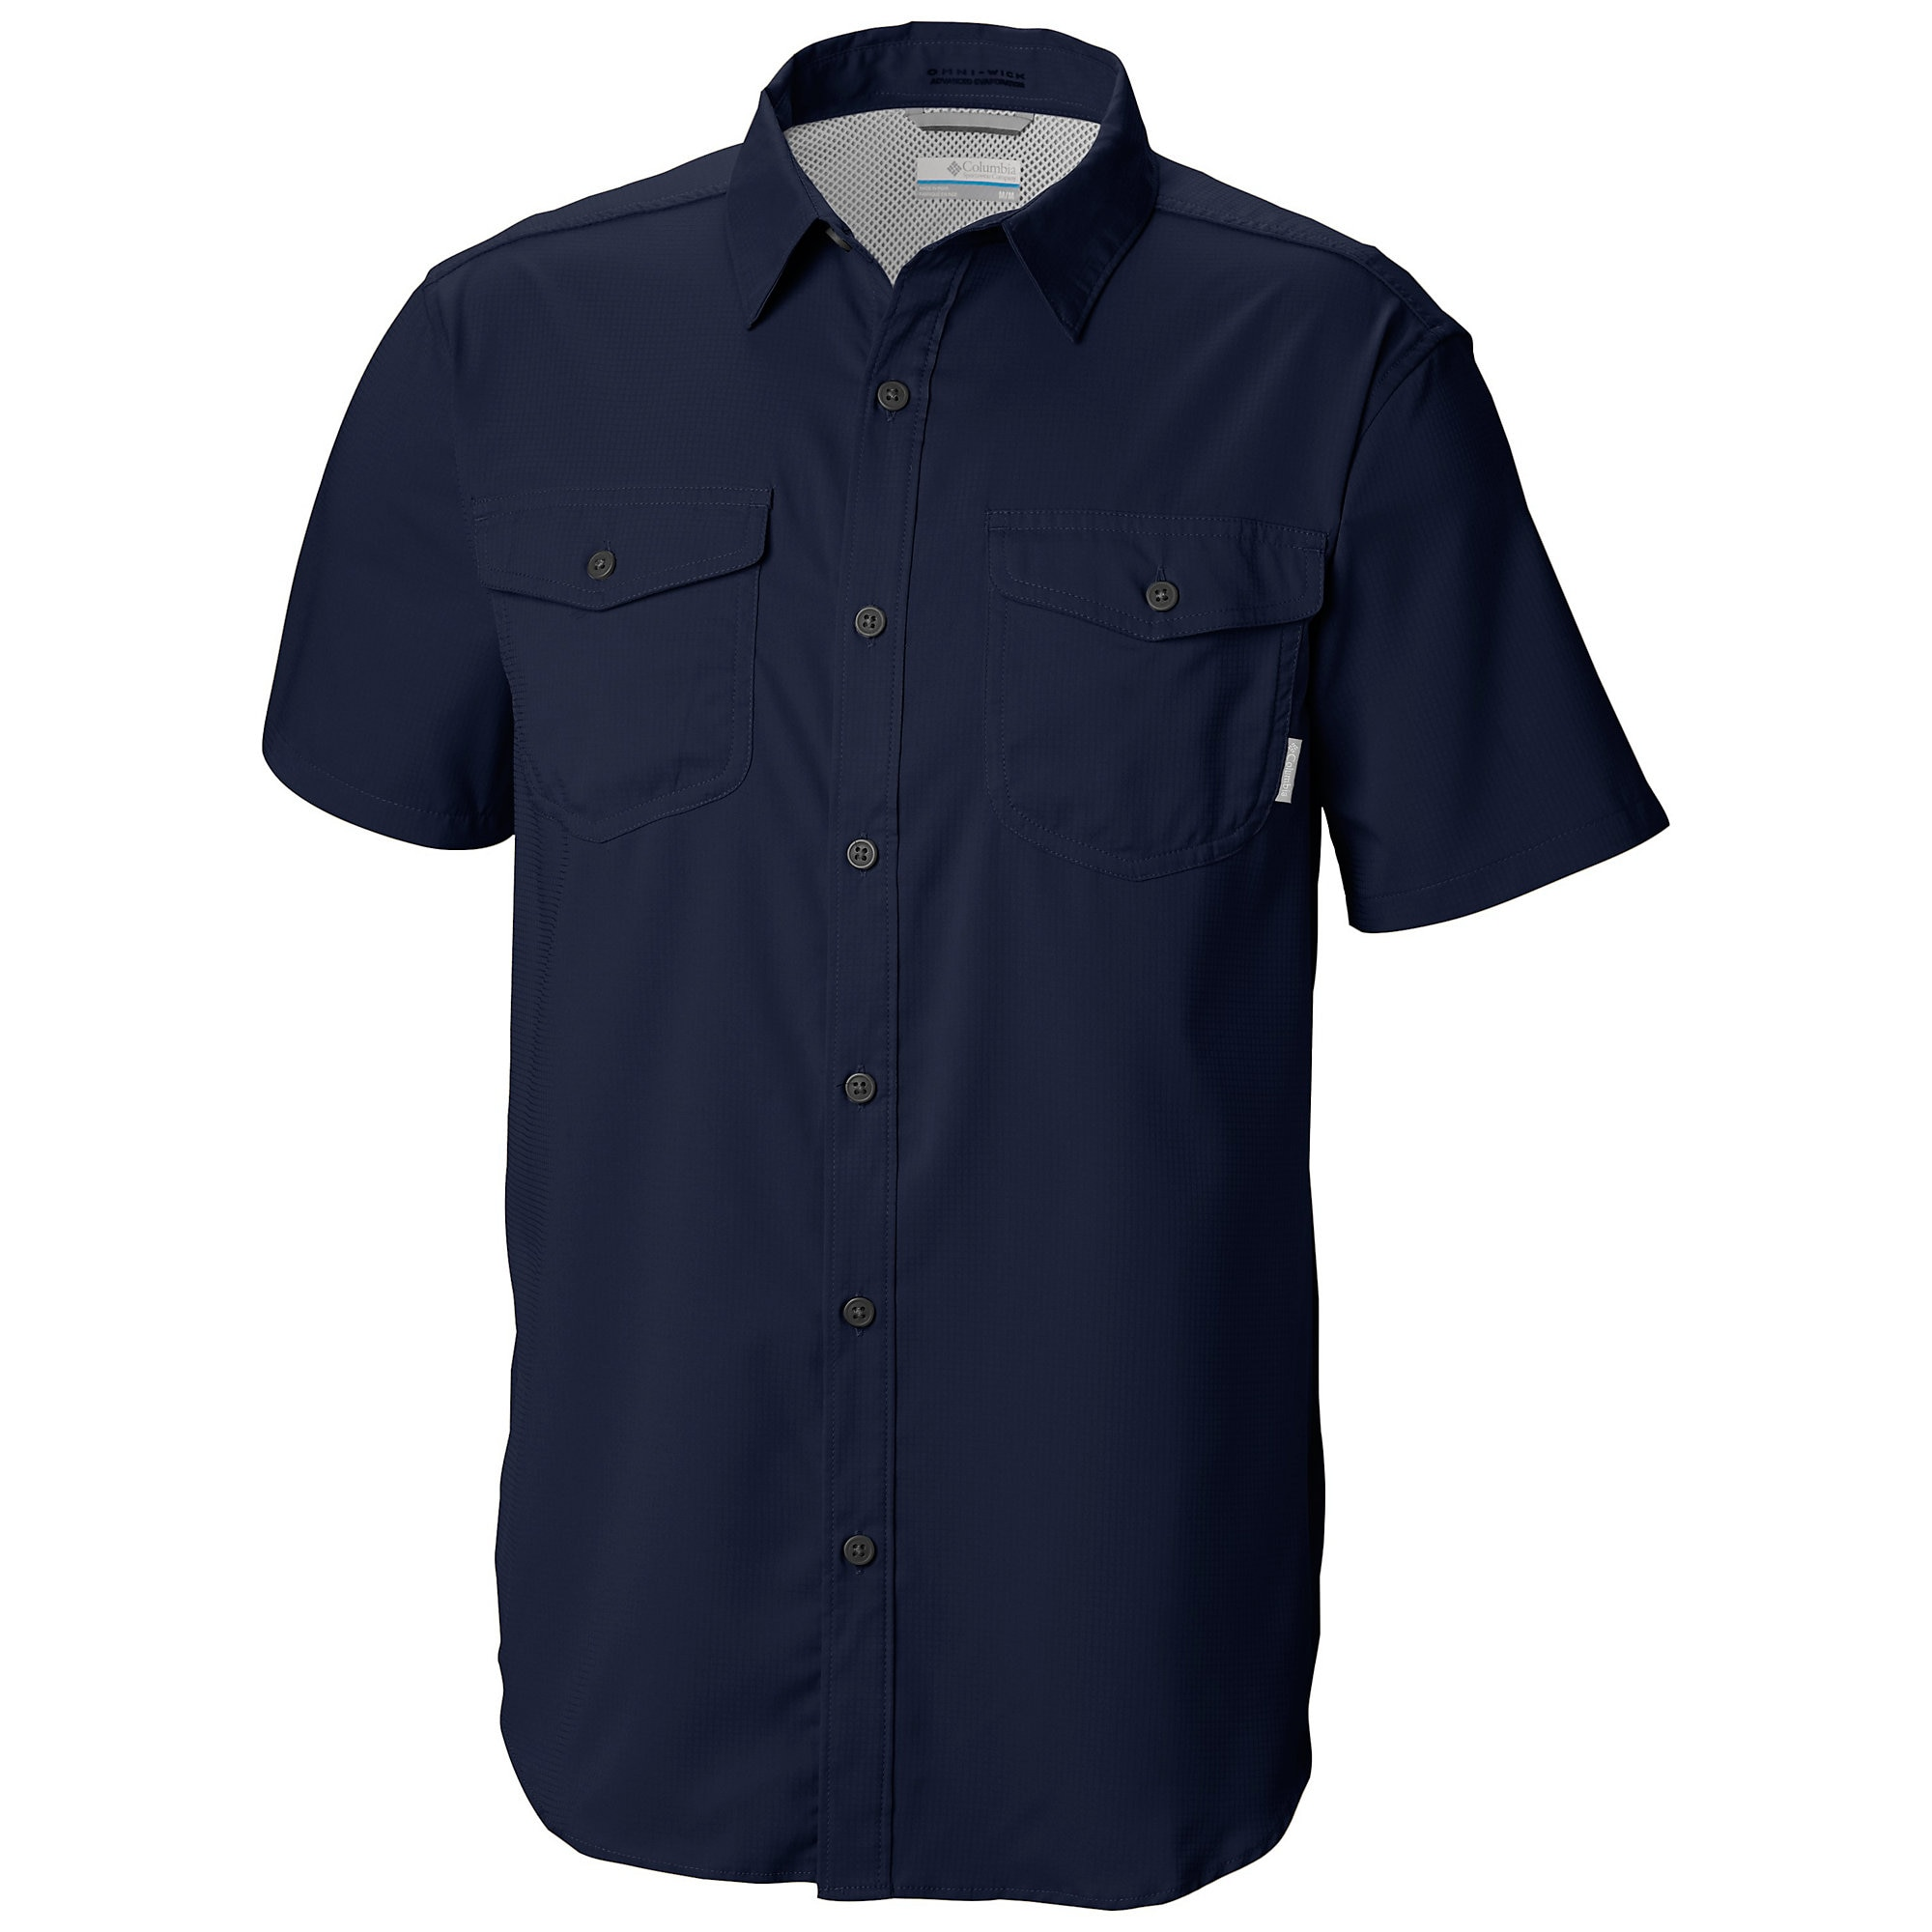 Columbia Utilizer II Short Sleeve Shirt